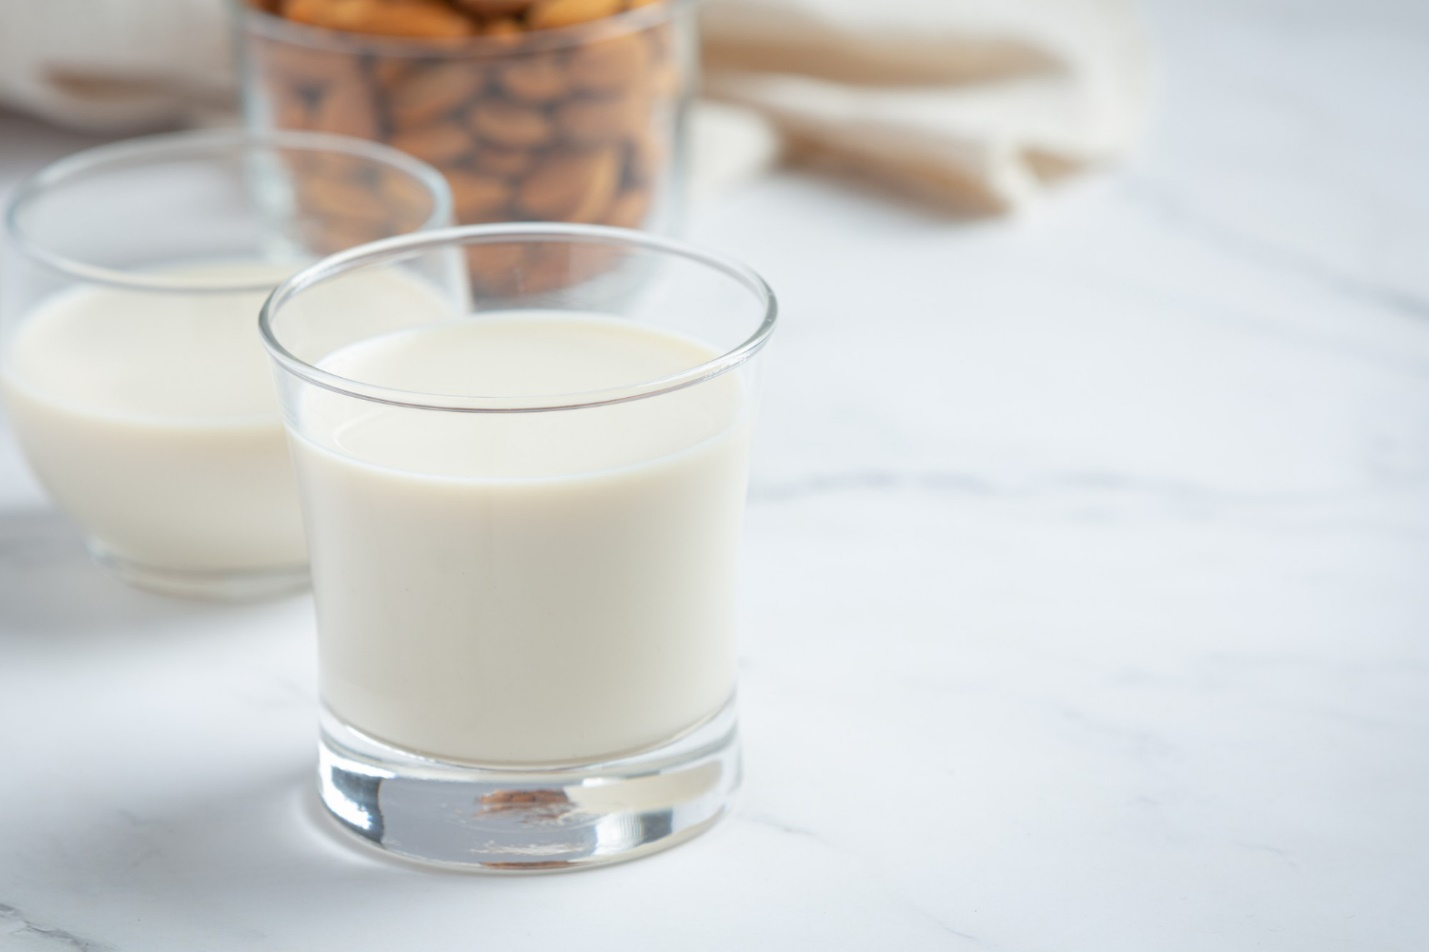 C:\Users\Muhammad Ismail\Downloads\almond-milk-with-almond-marble-background.jpg